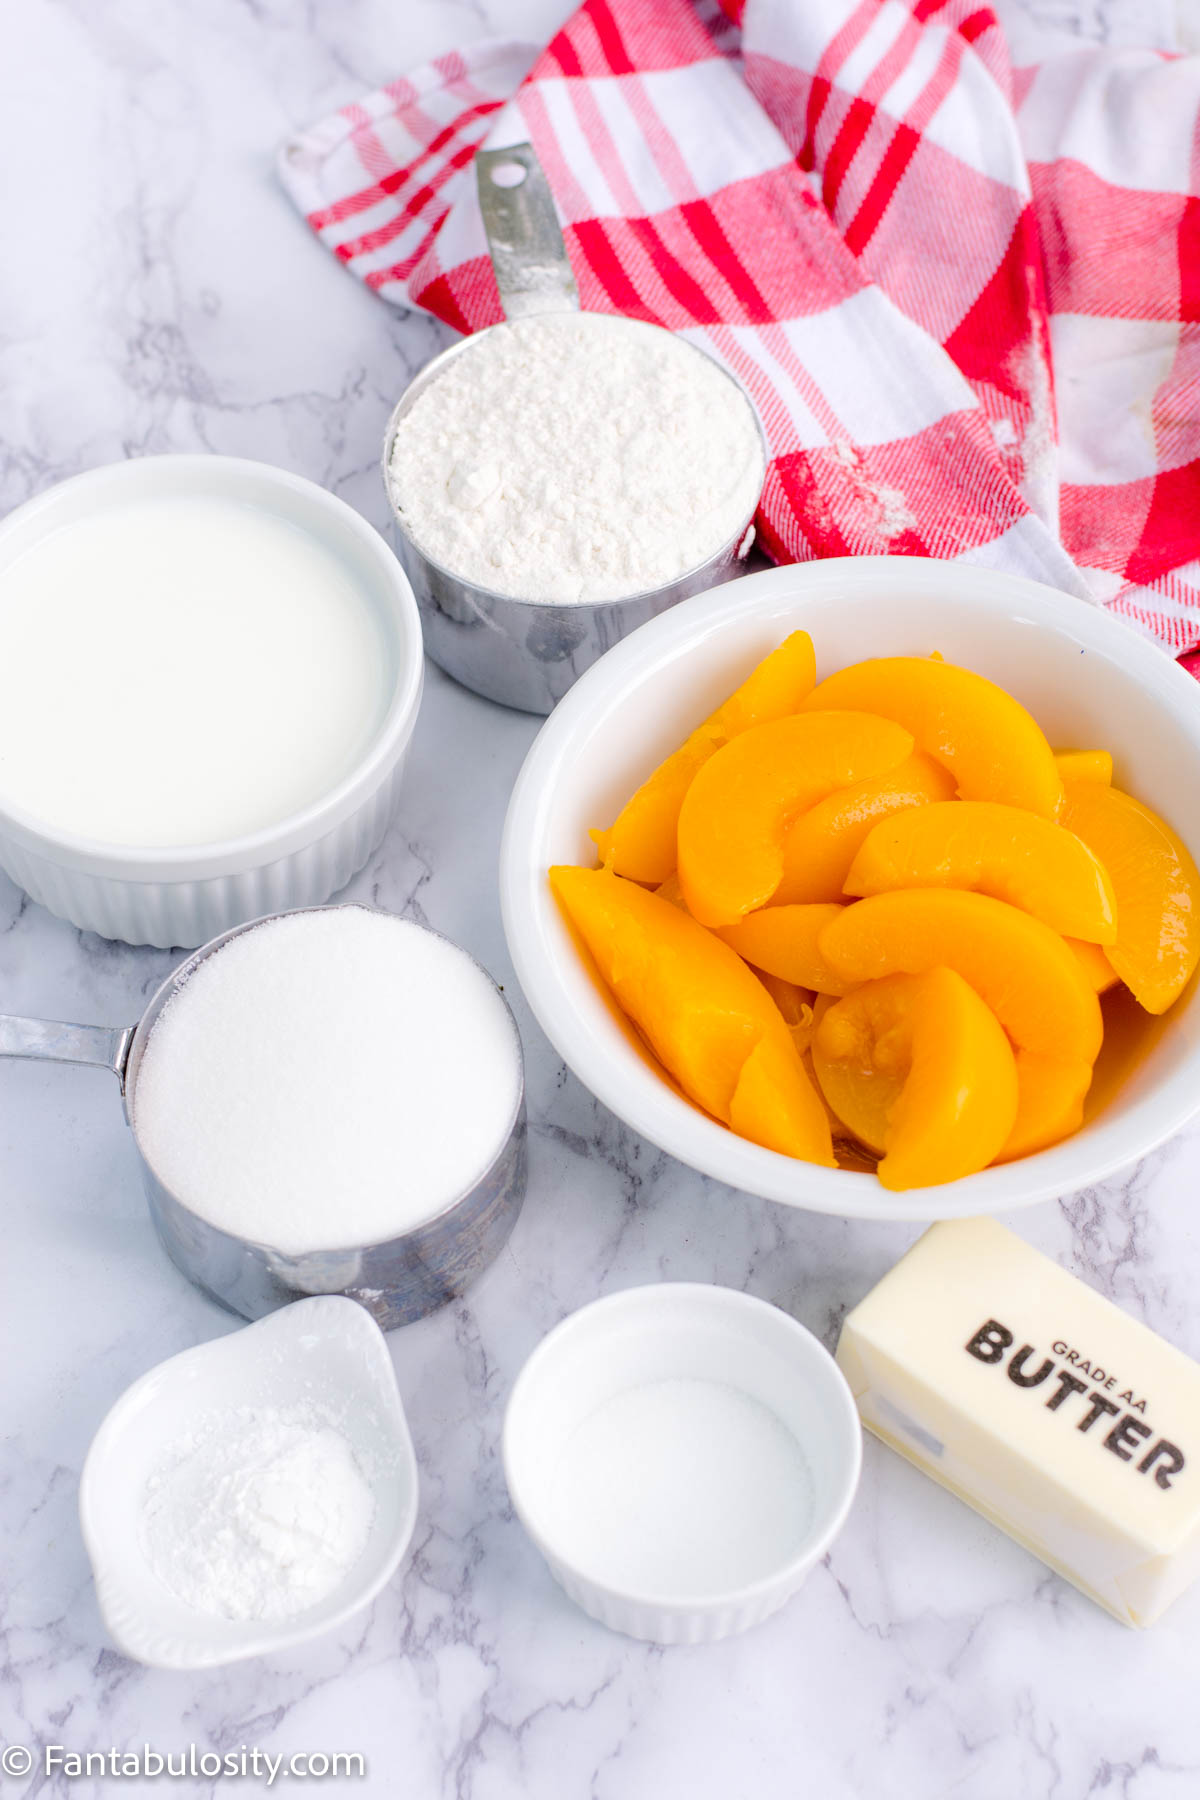 Peach Cobbler Ingredients on Counter